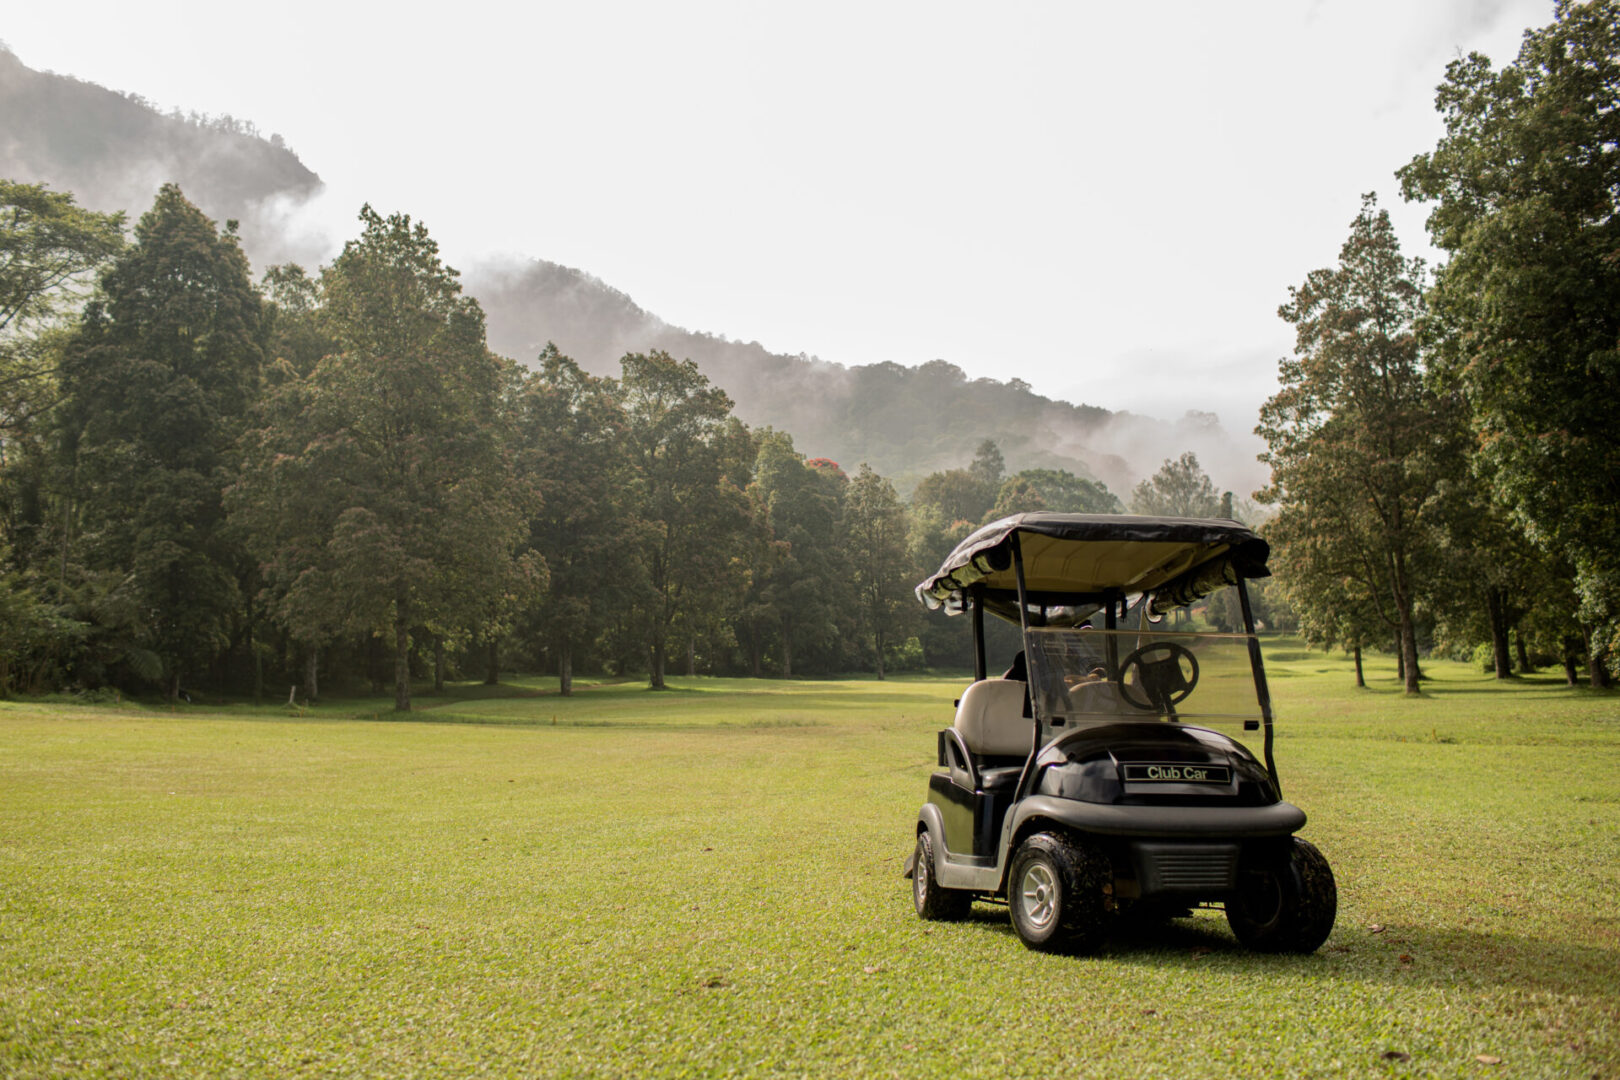 Golf cart parked. Bali. Indonesia